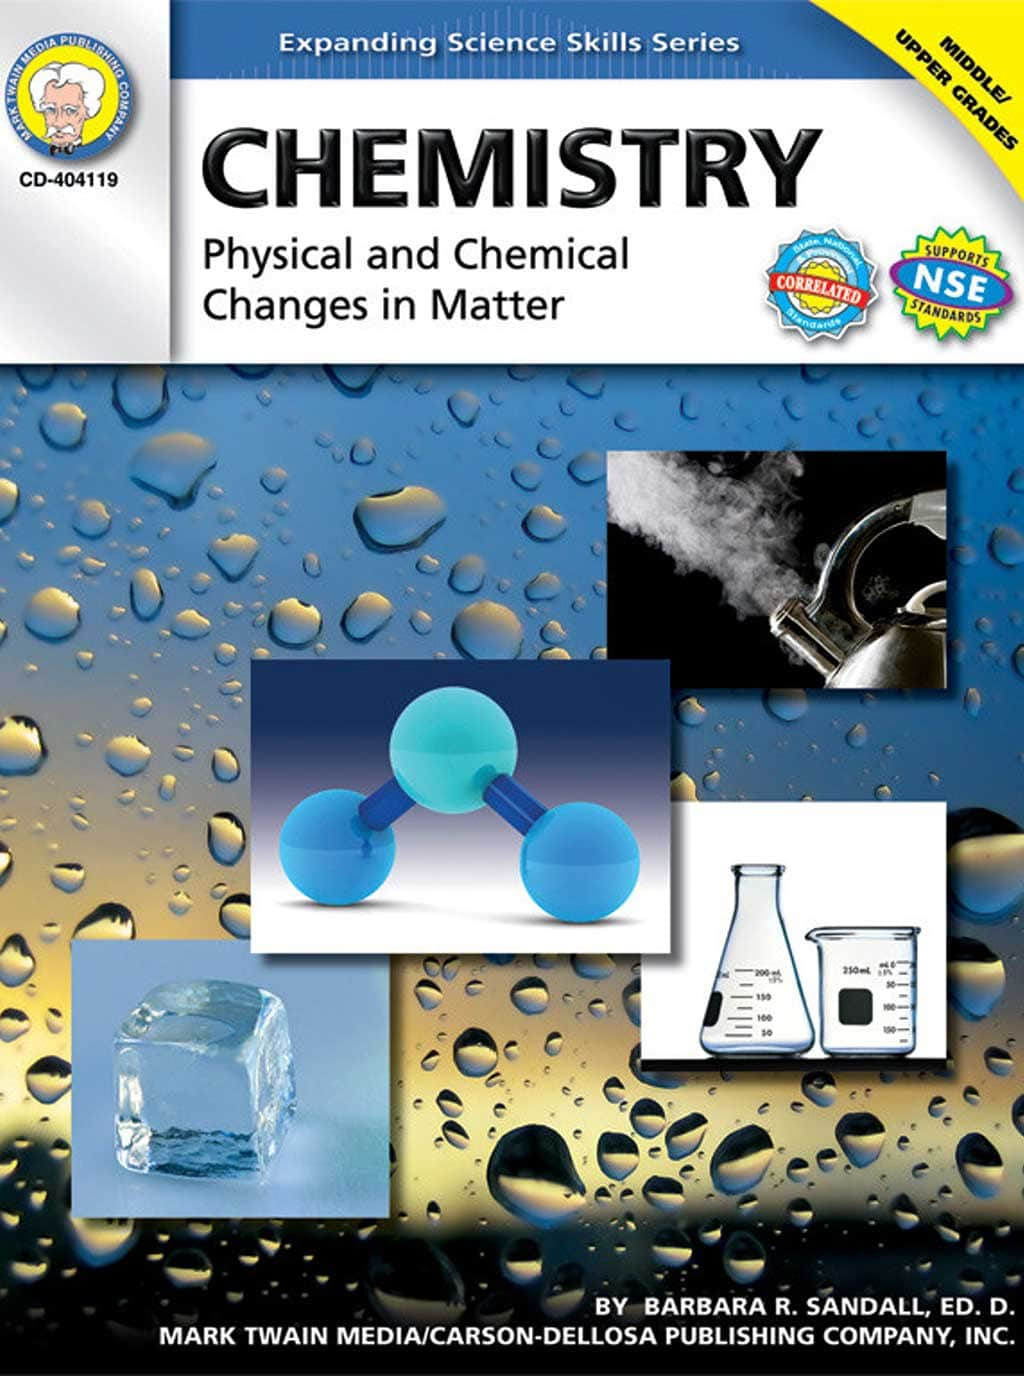 Science Shepherd homeschool chemistry lab activity book cover